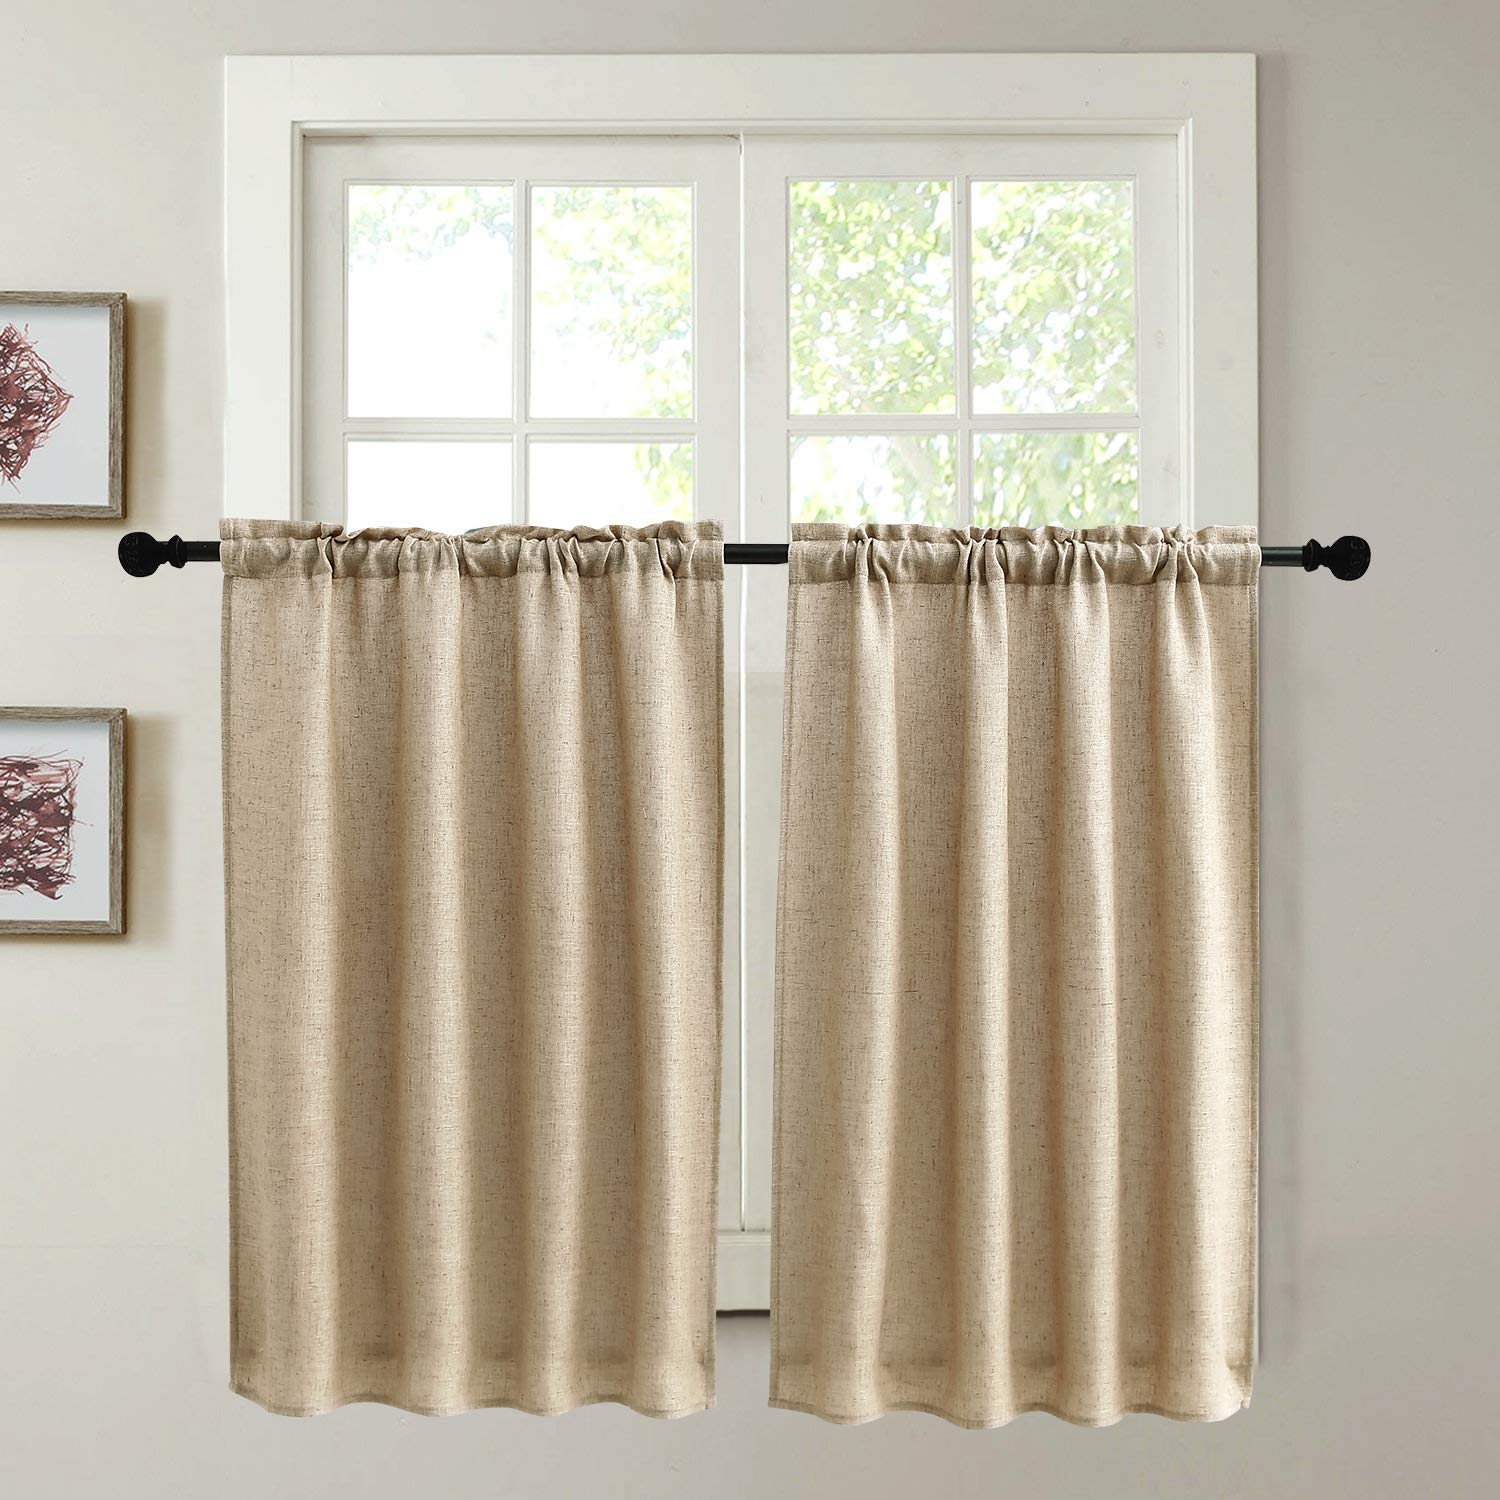 Kitchen Curtains for Dining Room Burlap Linen Tier Curtain Window Treatment Drapes for Living Room Set of 2 Each 29 x 36 inches Rod Pocket Coffee